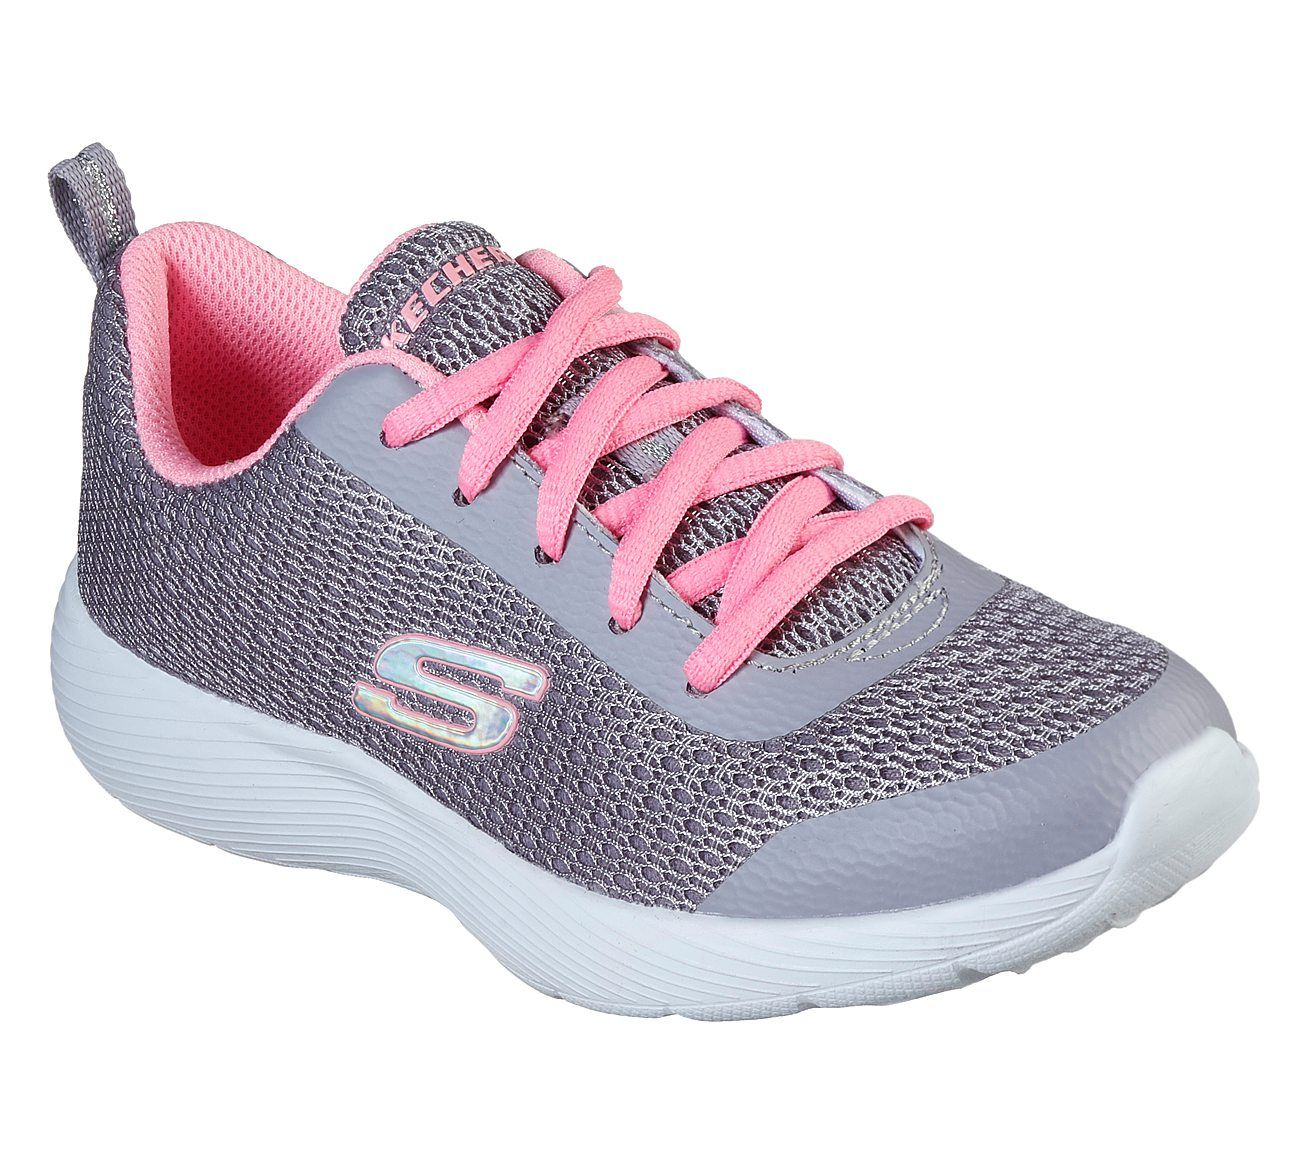 Dyna Lite Ultra Dash | Fabric shoes, Skechers, Childrens shoes